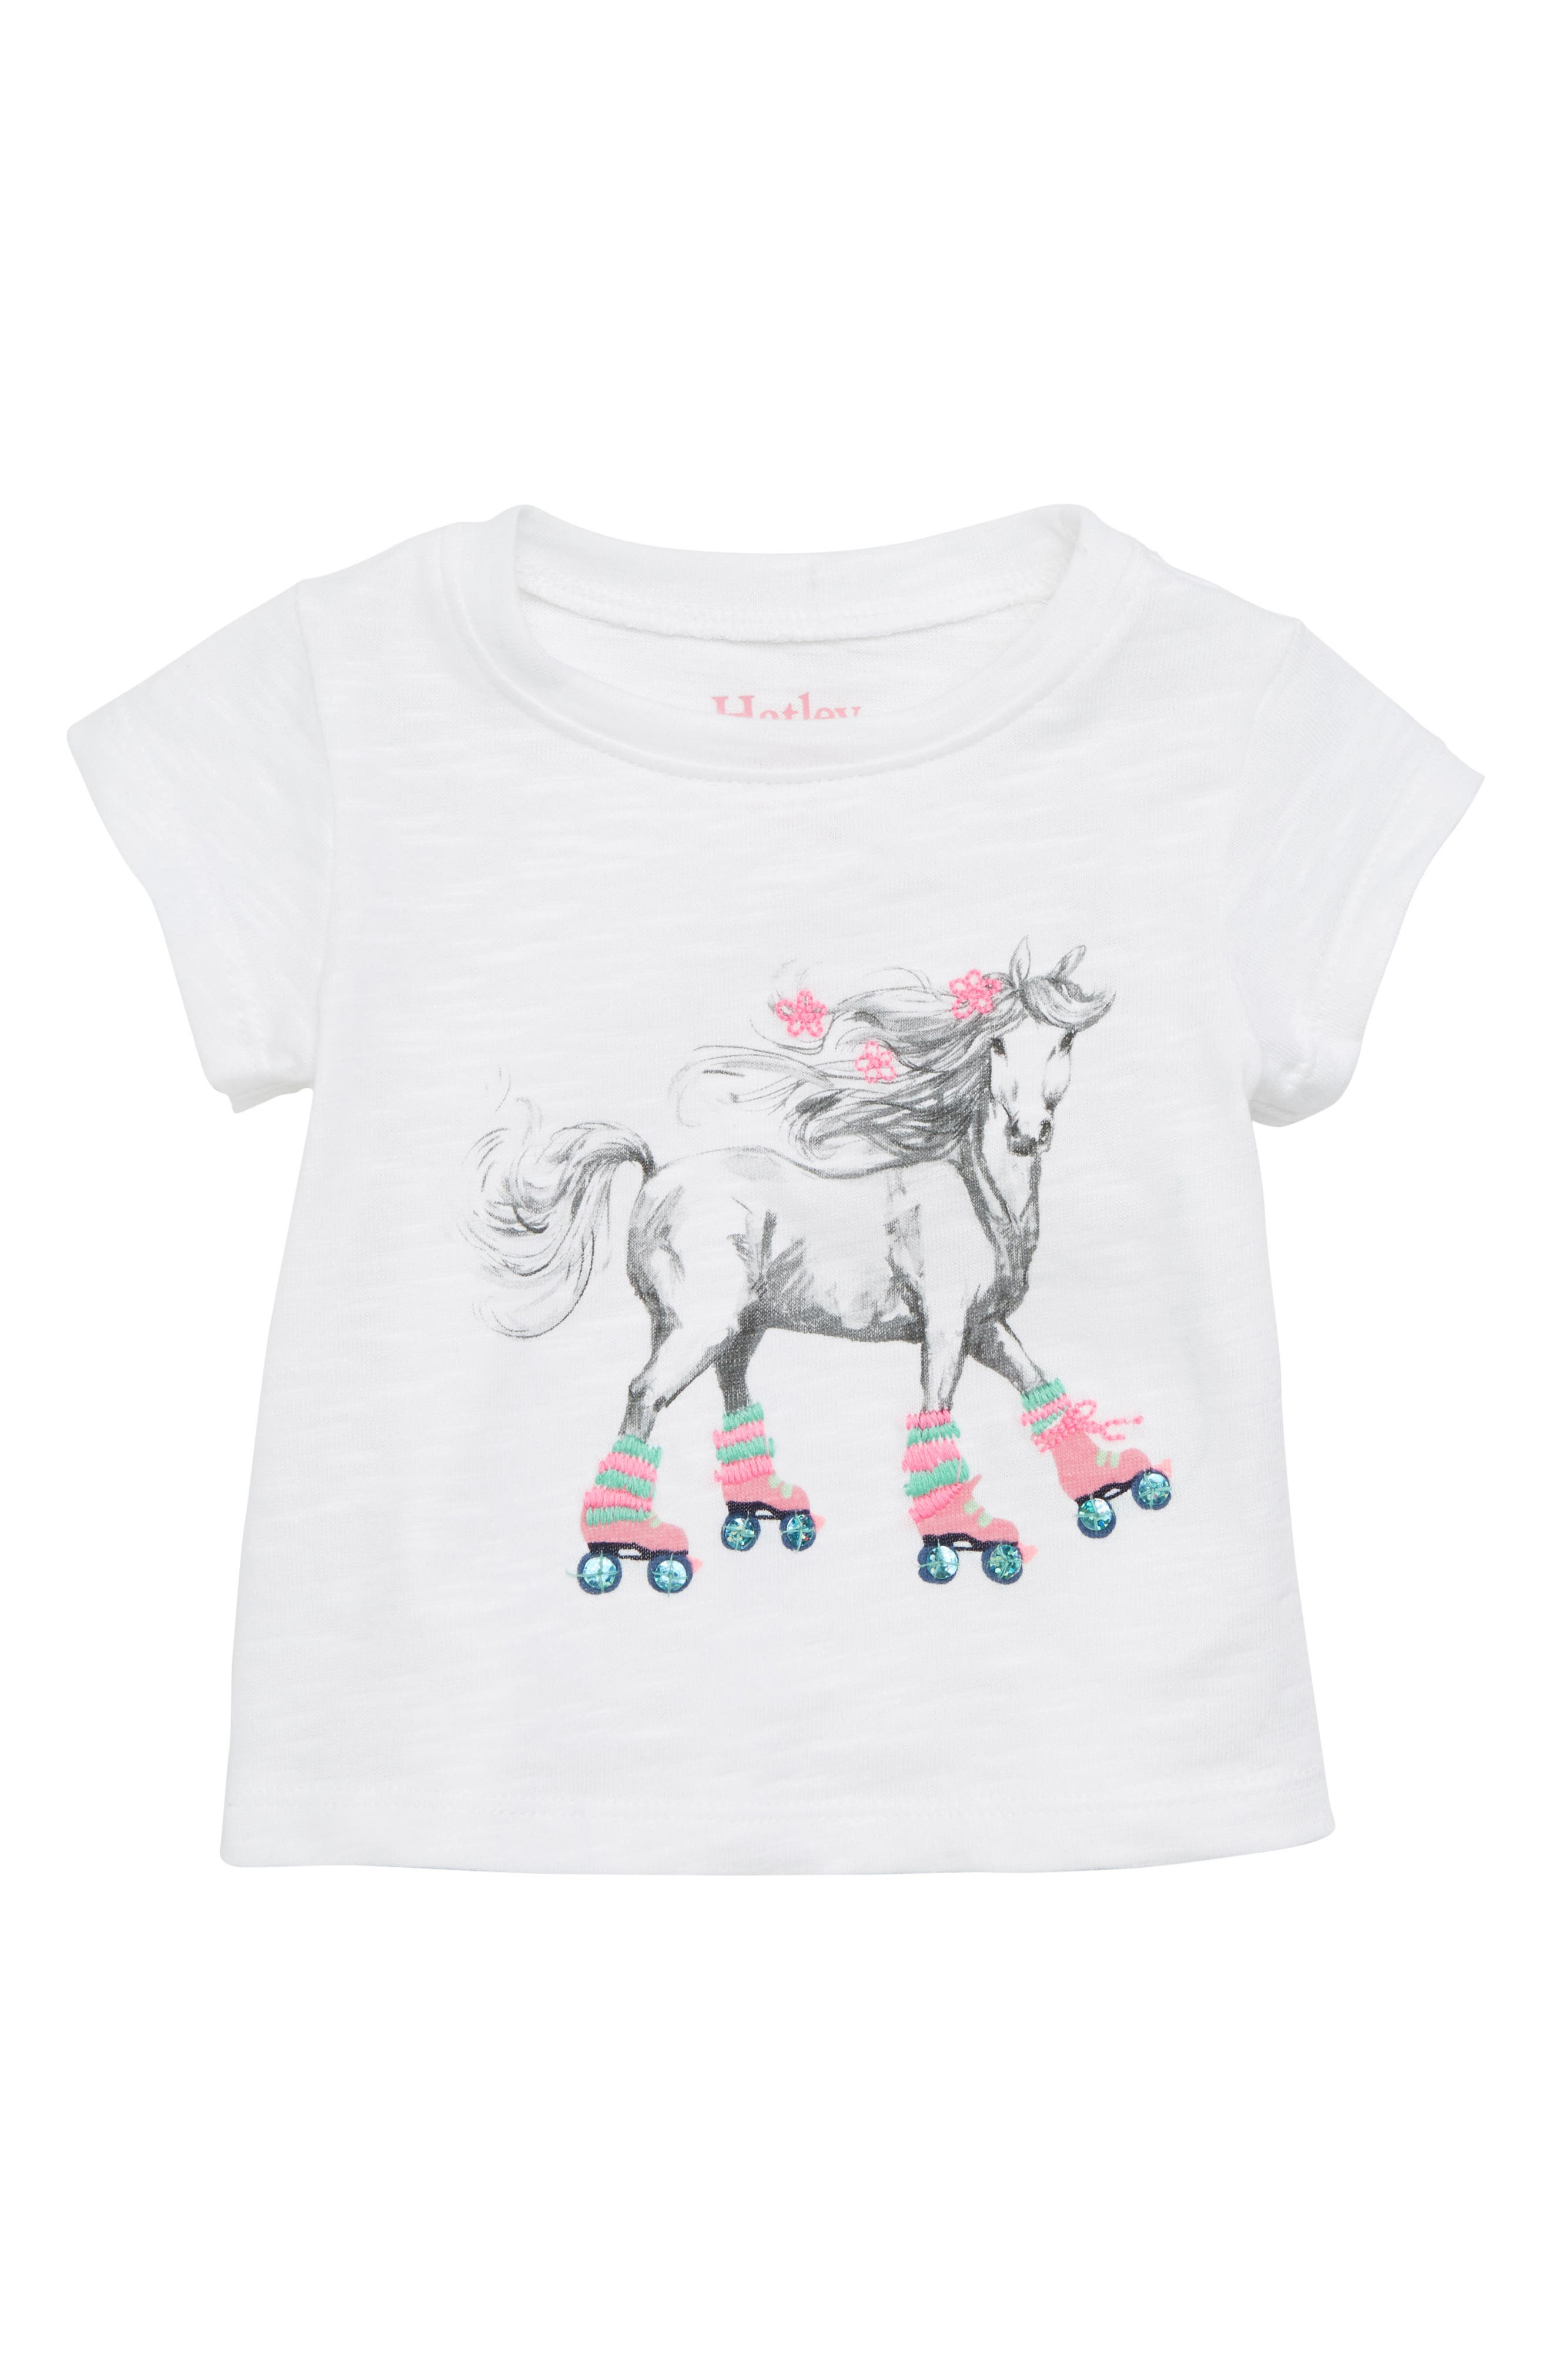 Main Image - Hatley Roller Skating Horse Graphic Tee (Baby Girls)